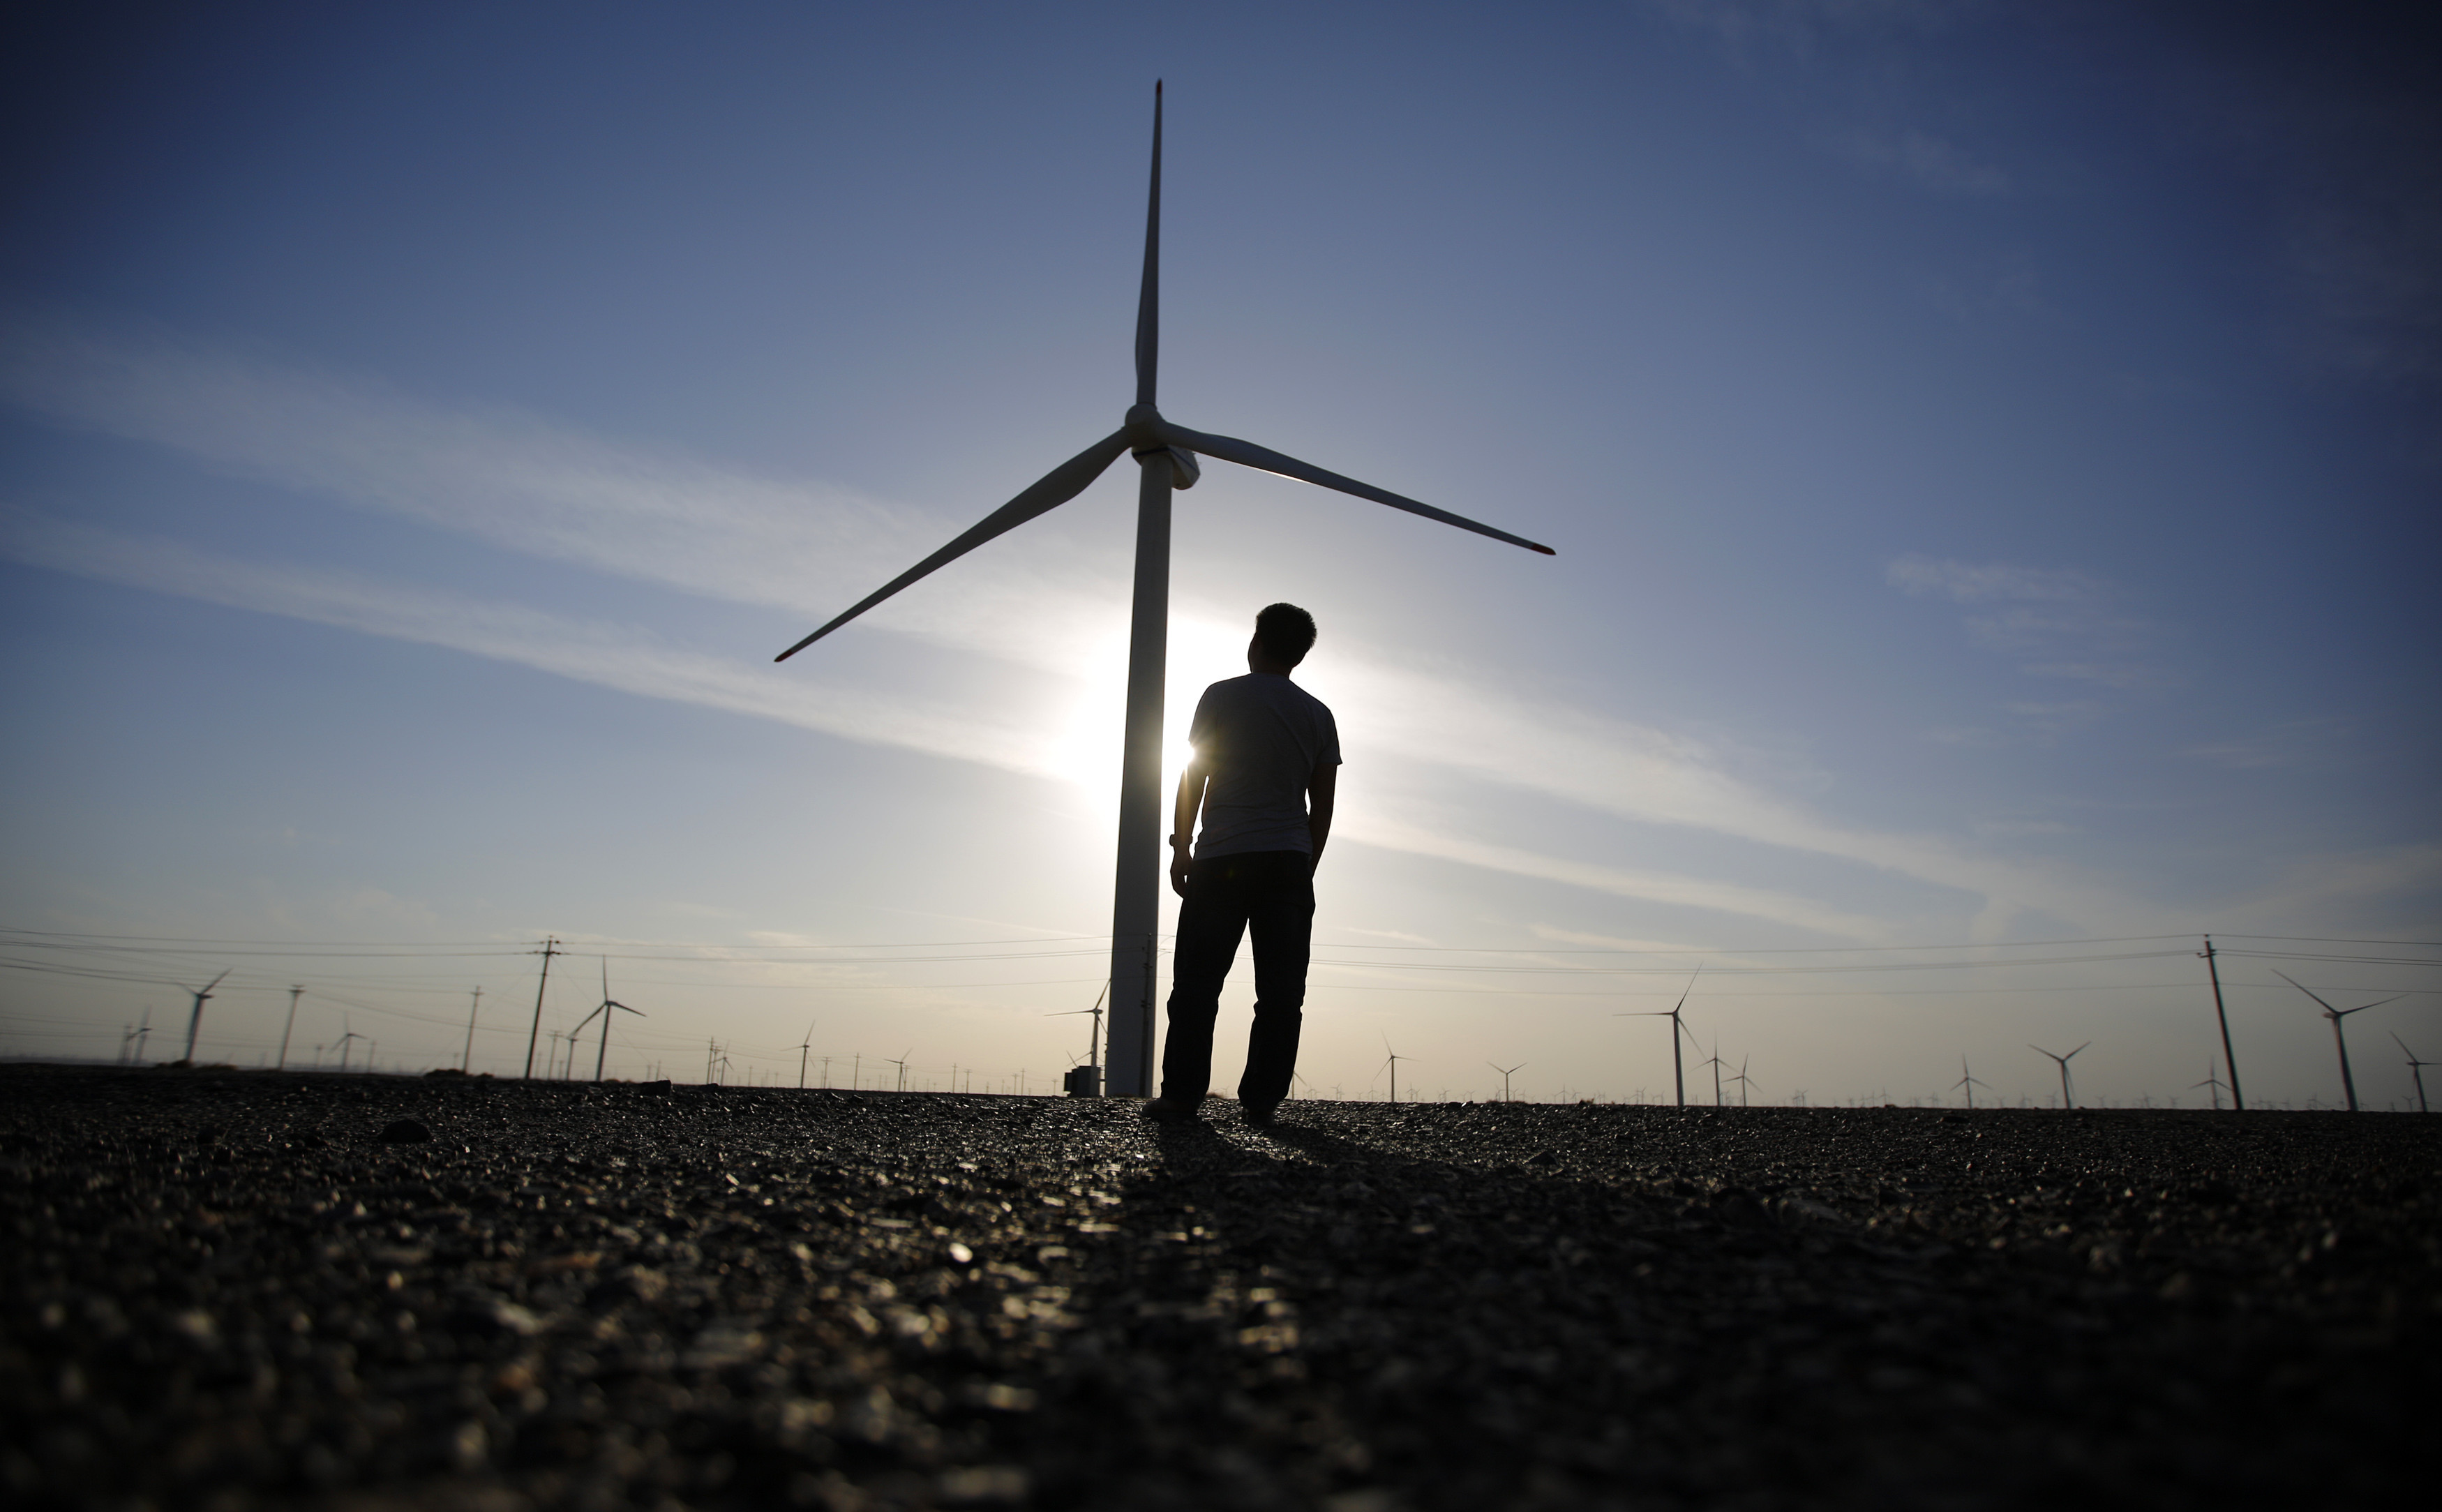 A worker stands as he looks at a wind turbine used to generate electricity, at a wind farm in Guazhou, 950km (590 miles) northwest of Lanzhou, Gansu Province September 15, 2013. China is pumping investment into wind power, which is more cost-competitive than solar energy and partly able to compete with coal and gas. China is the world's biggest producer of CO2 emissions, but is also the world's leading generator of renewable electricity. Environmental issues will be under the spotlight during a working group of the Intergovernmental Panel on Climate Change, which will meet in Stockholm from September 23-26. Picture taken September 15, 2013. REUTERS/Carlos Barria  (CHINA - Tags: ENERGY BUSINESS ENVIRONMENT) - GM1E99M14RE01